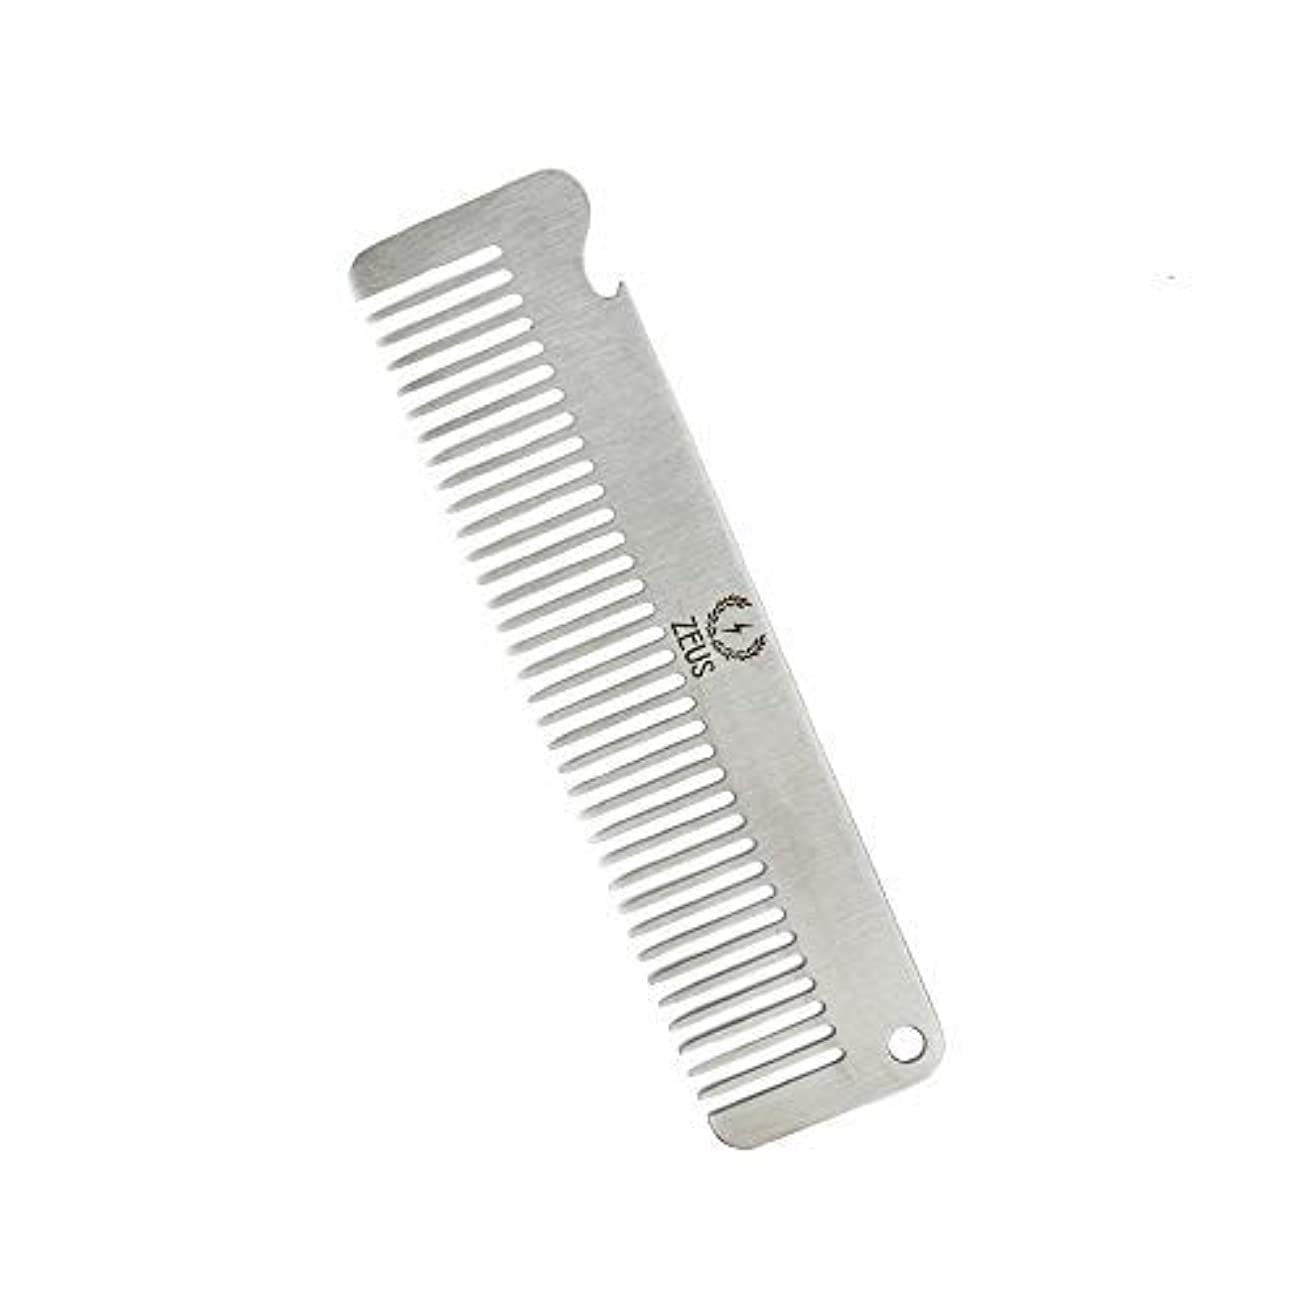 リンス冒険家本会議ZEUS Stainless Steel Comb with Bottle Opener - Beard Comb for Men! (Comb) [並行輸入品]